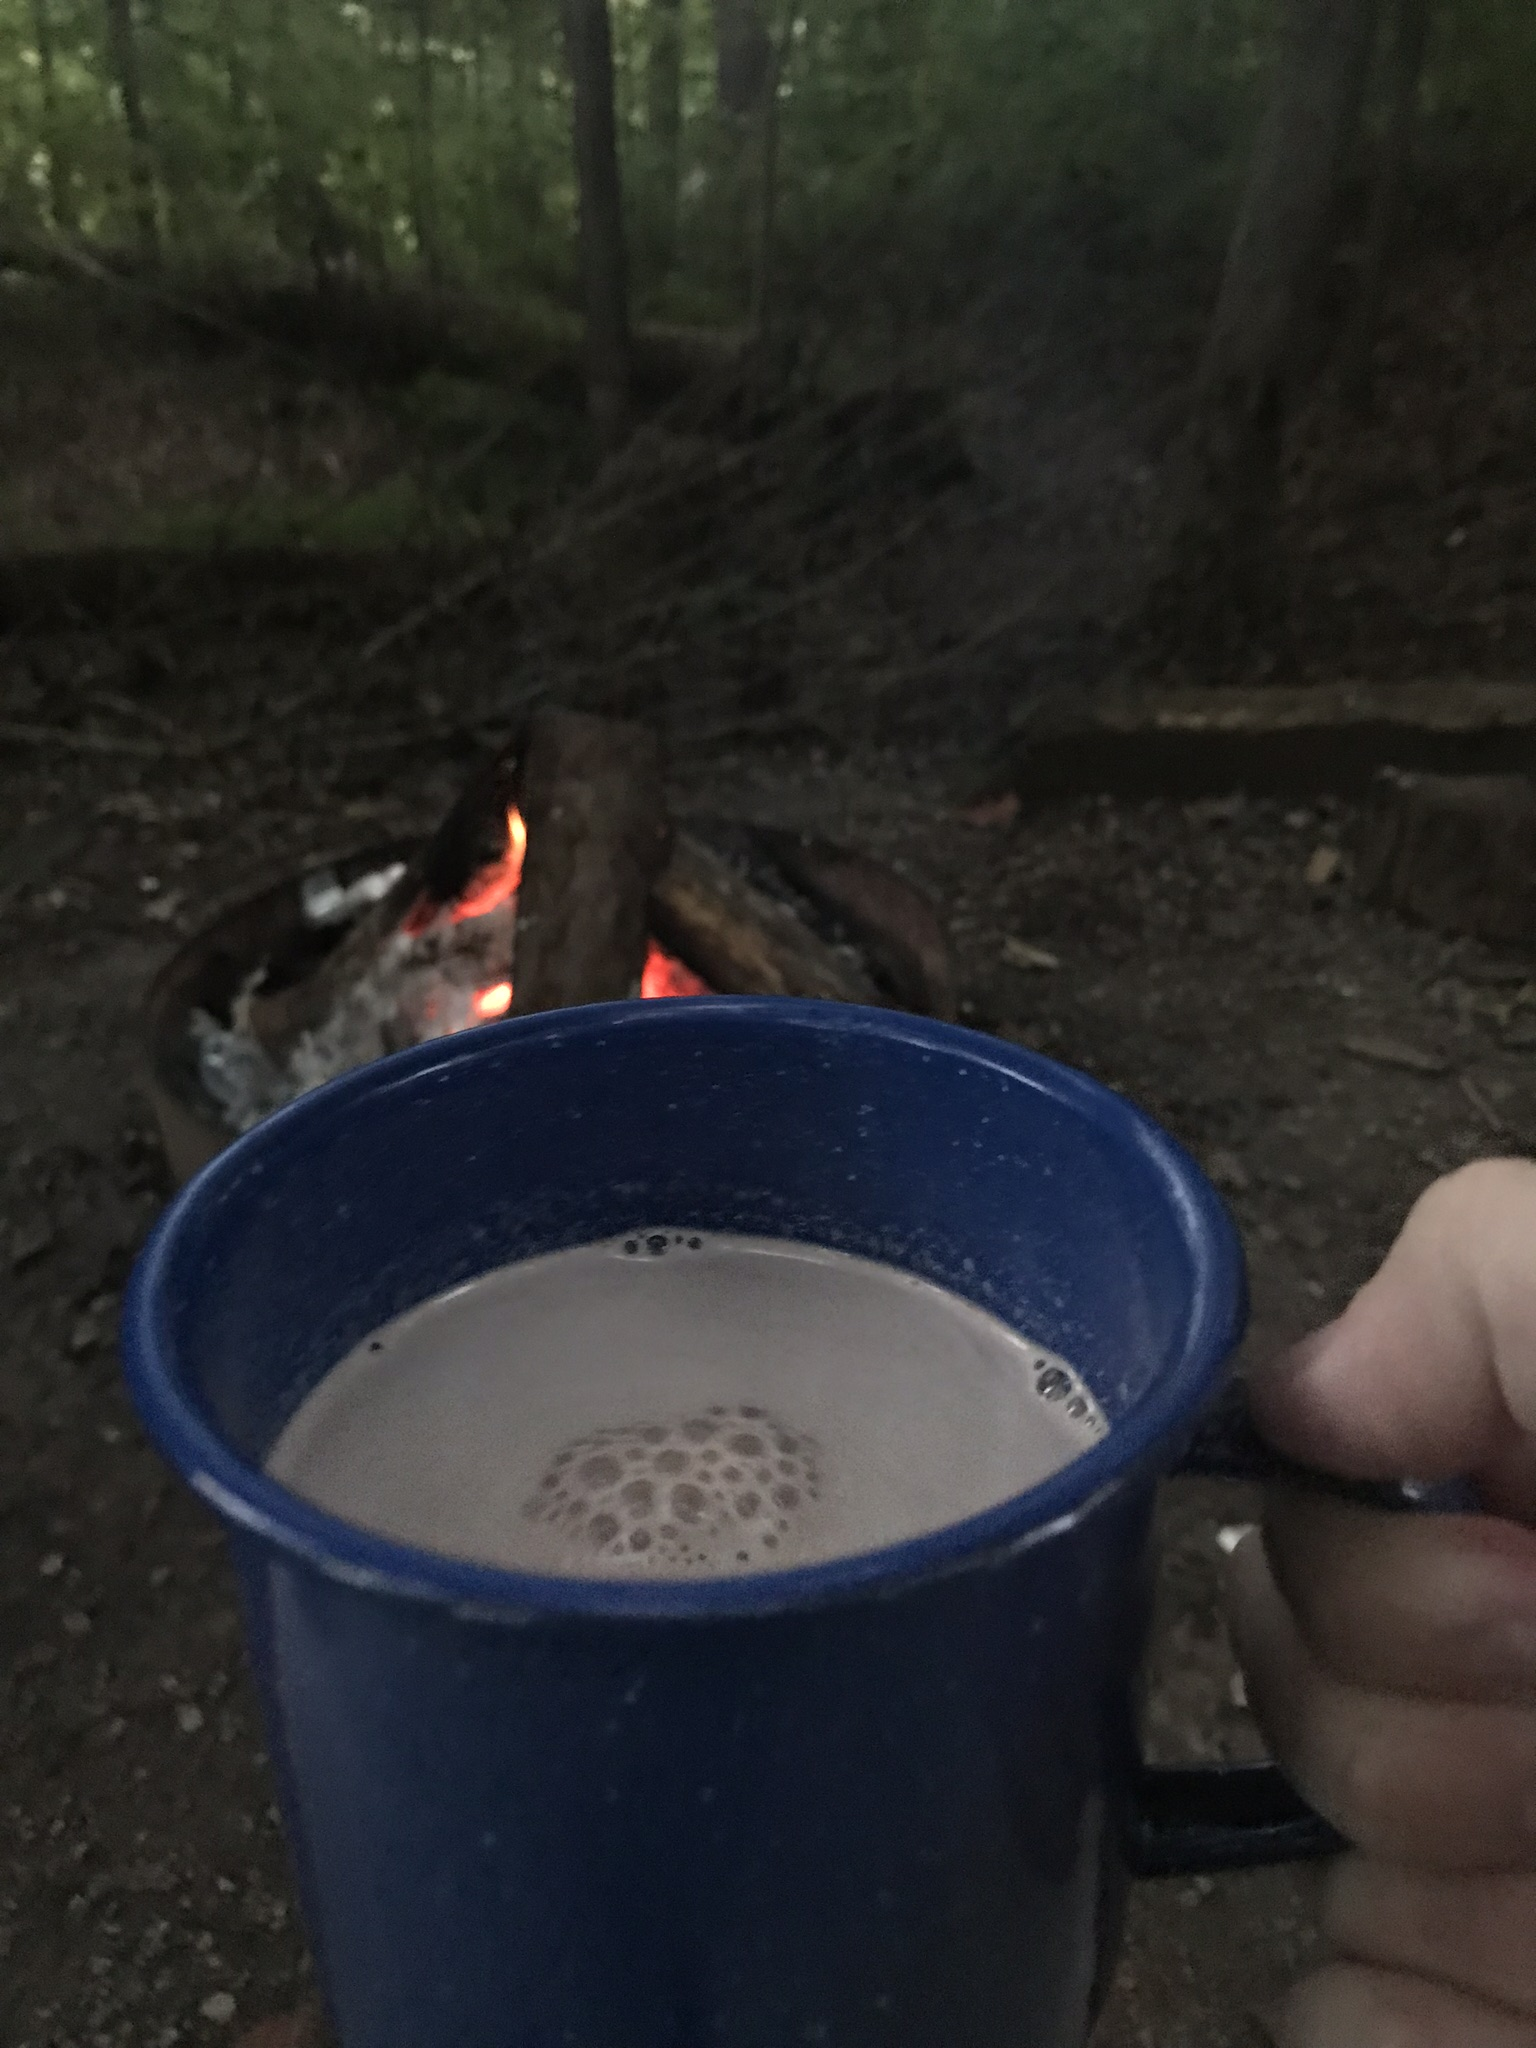 Hot chocolate and fire